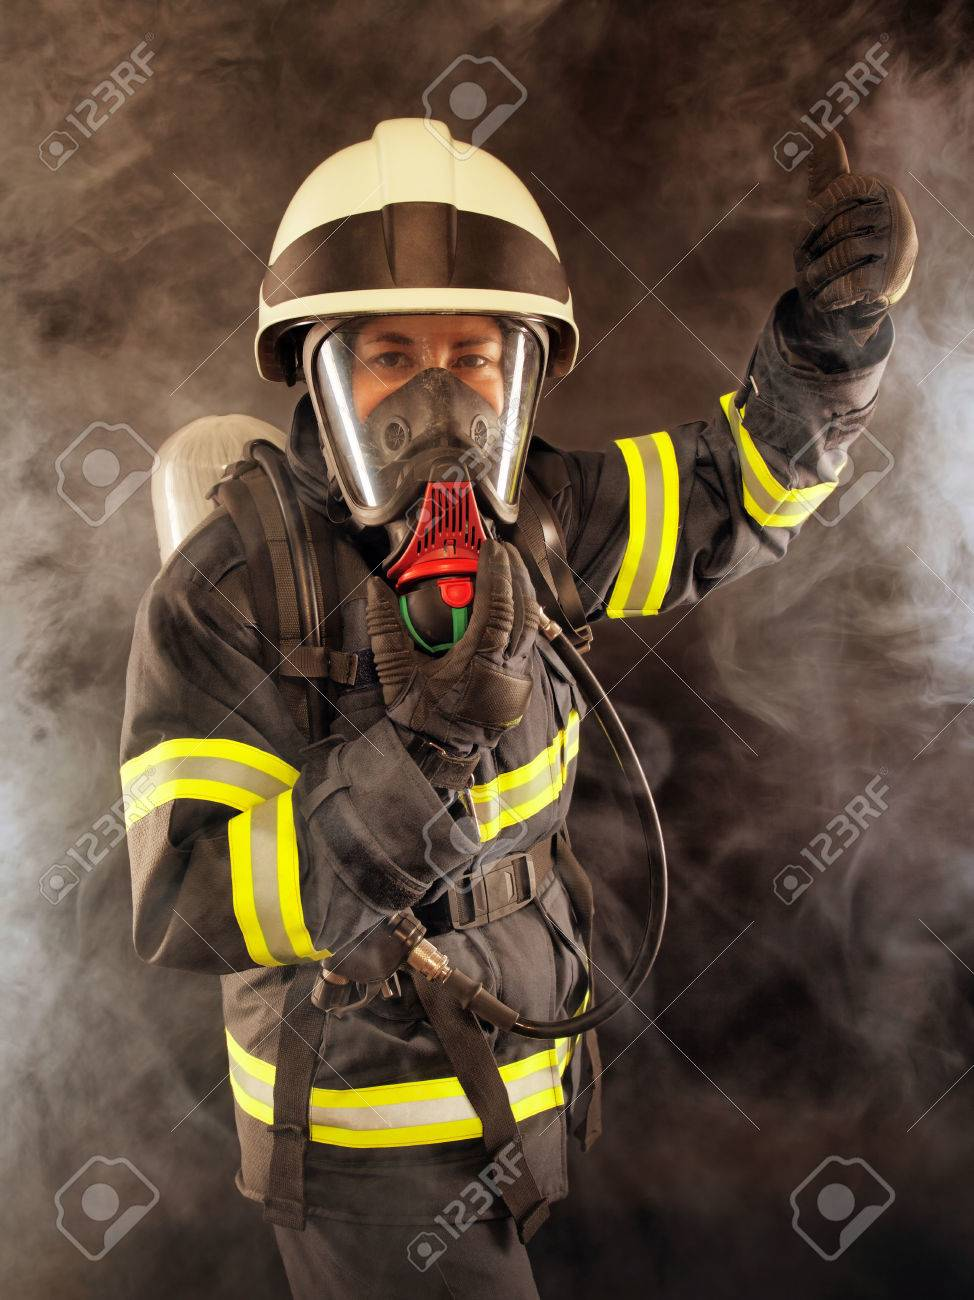 Firefighter wearing protective suit, helmet and mask - 25024987